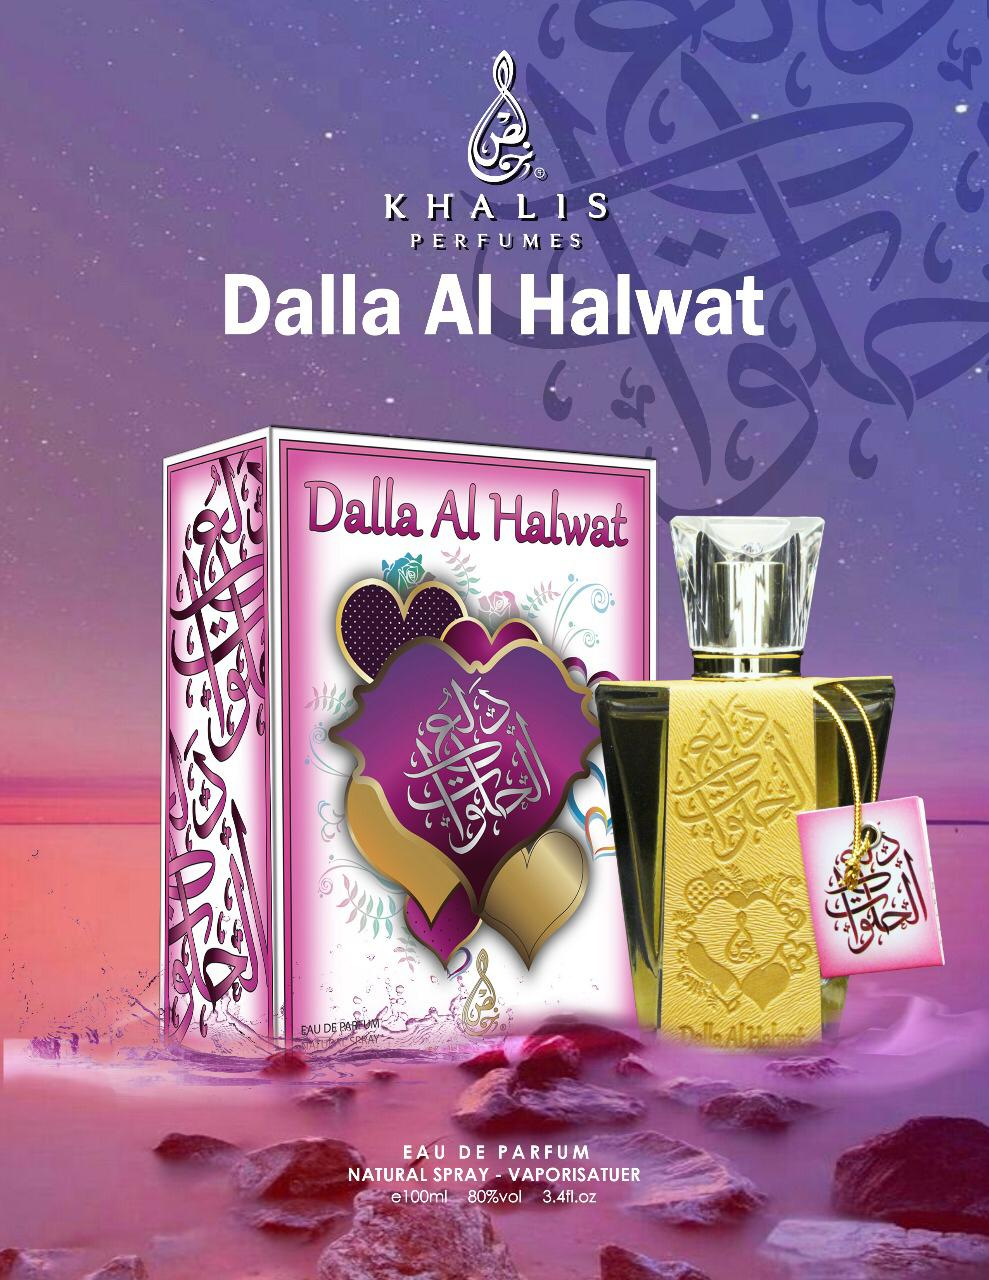 khalis-dalla-al-halavet-perfume-for-men-and-women-100-ml-edp